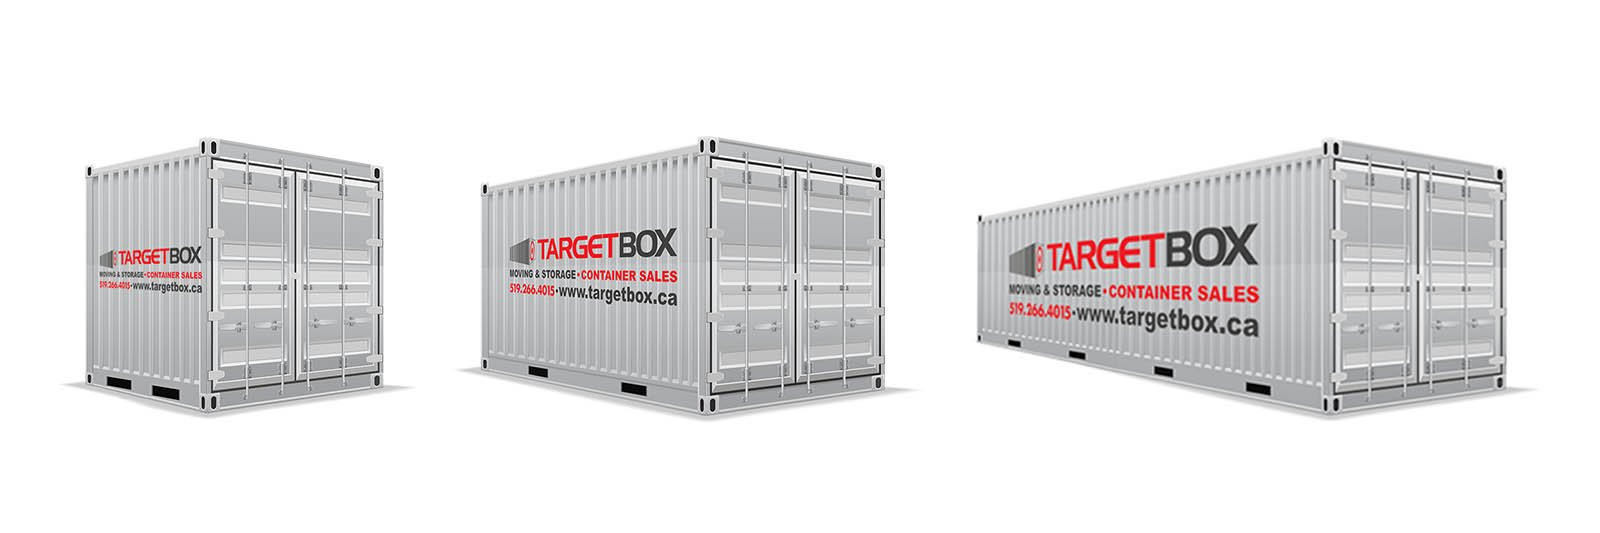 Shipping Container Sizes - TargetBox Containers